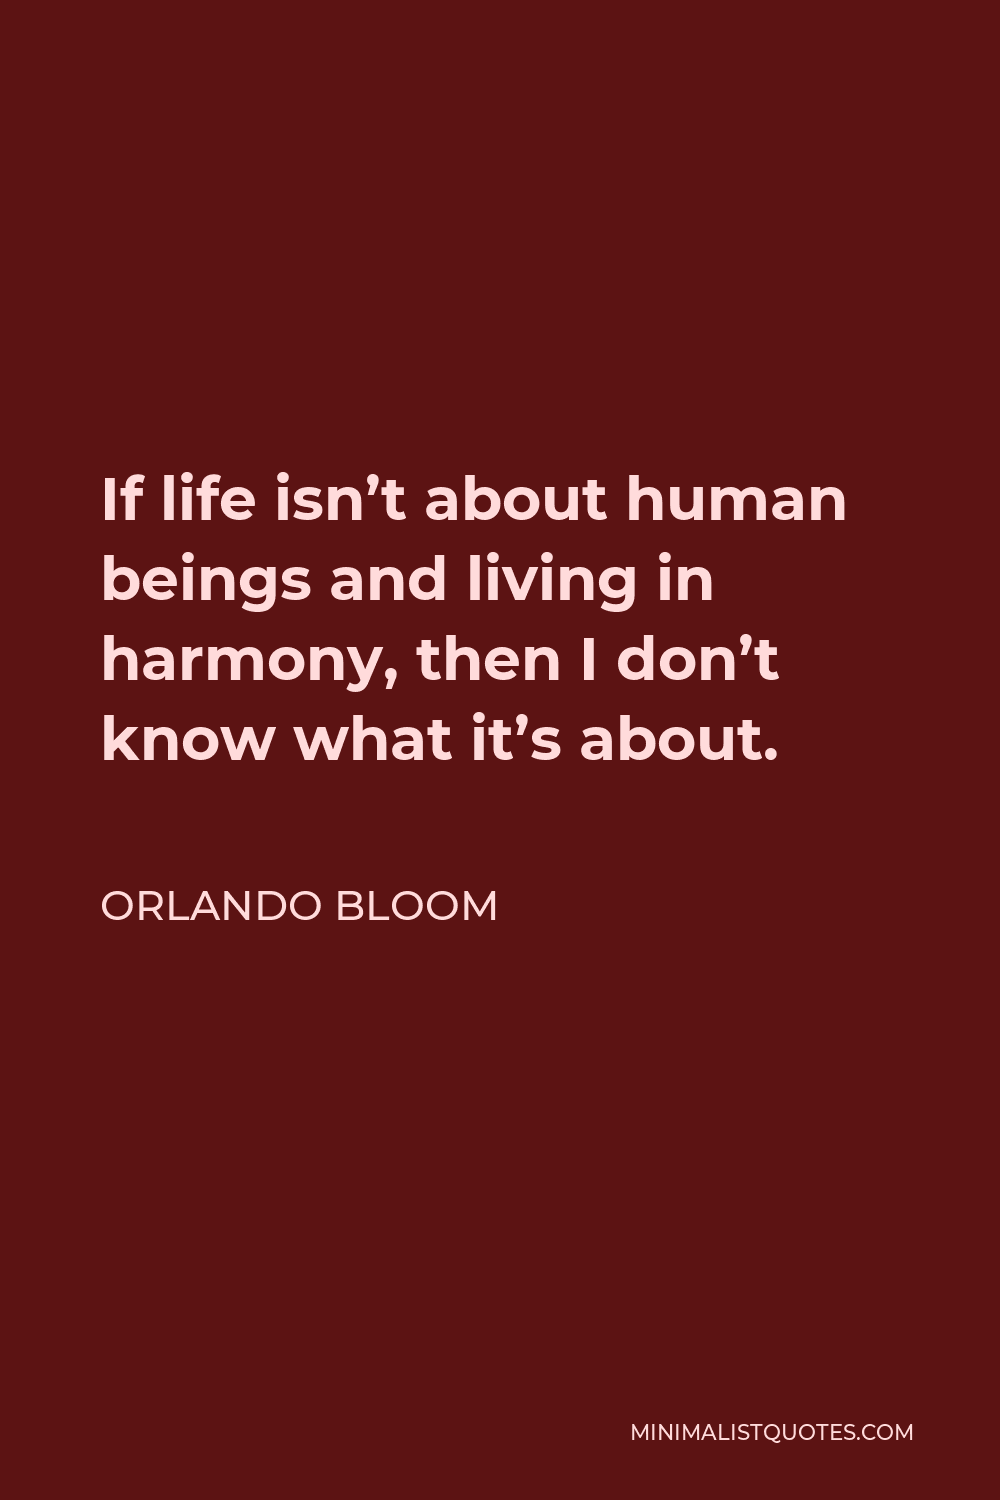 Orlando Bloom Quote - If life isn't about human beings and living in harmony, then I don't know what it's about.